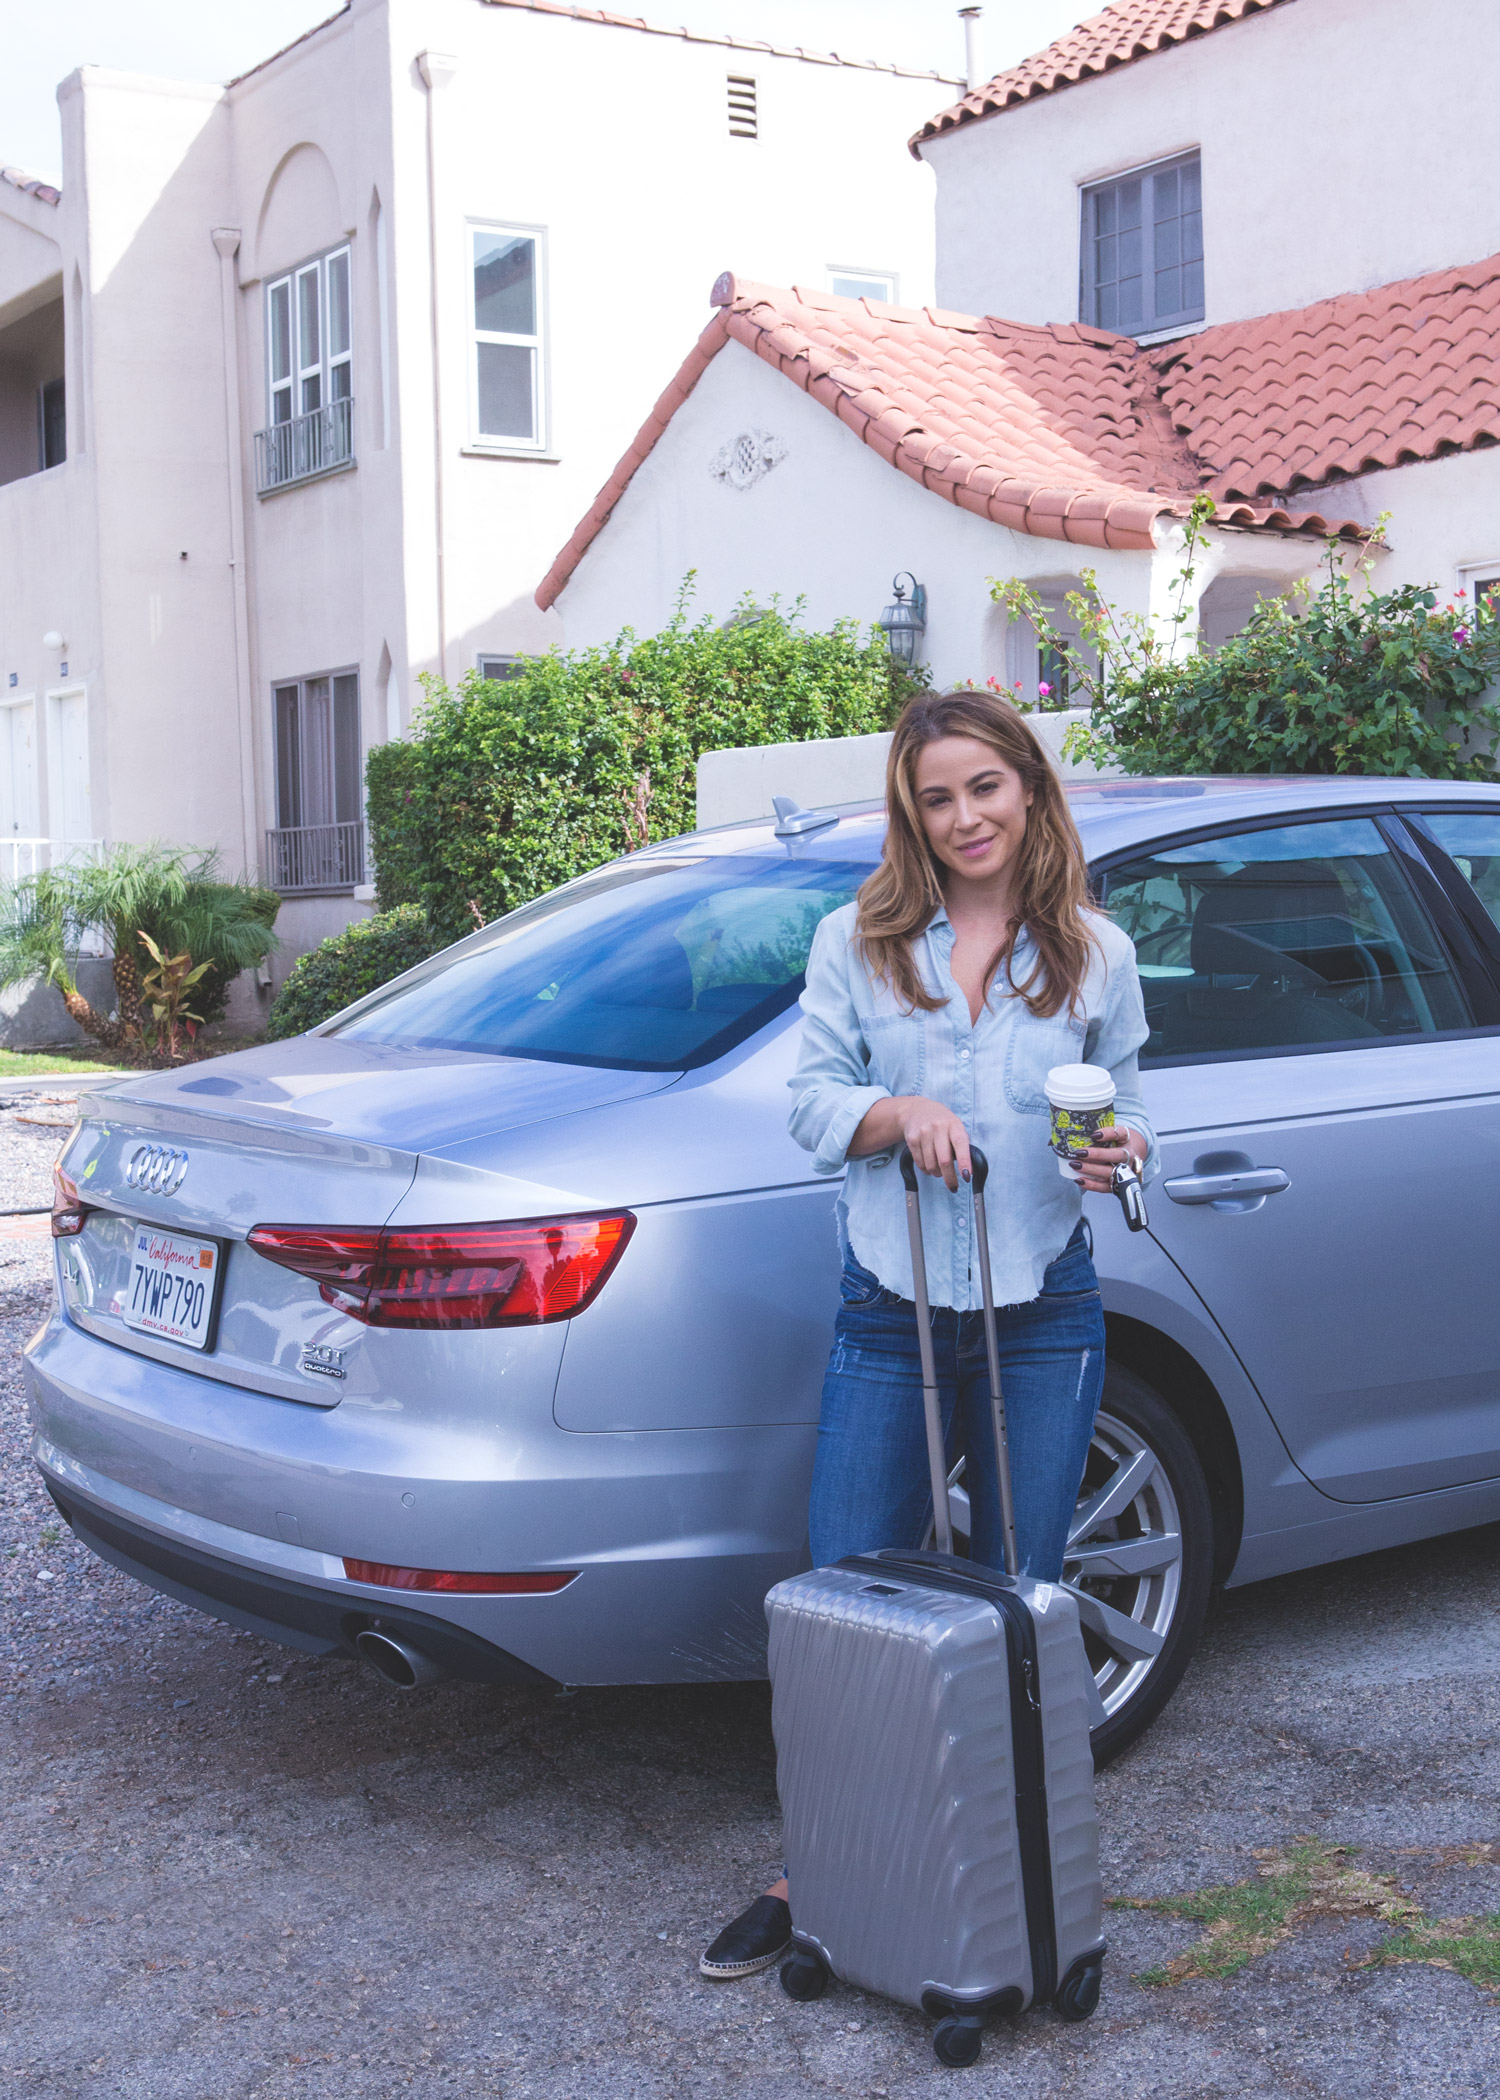 Partnered up with Silvercar for this trip